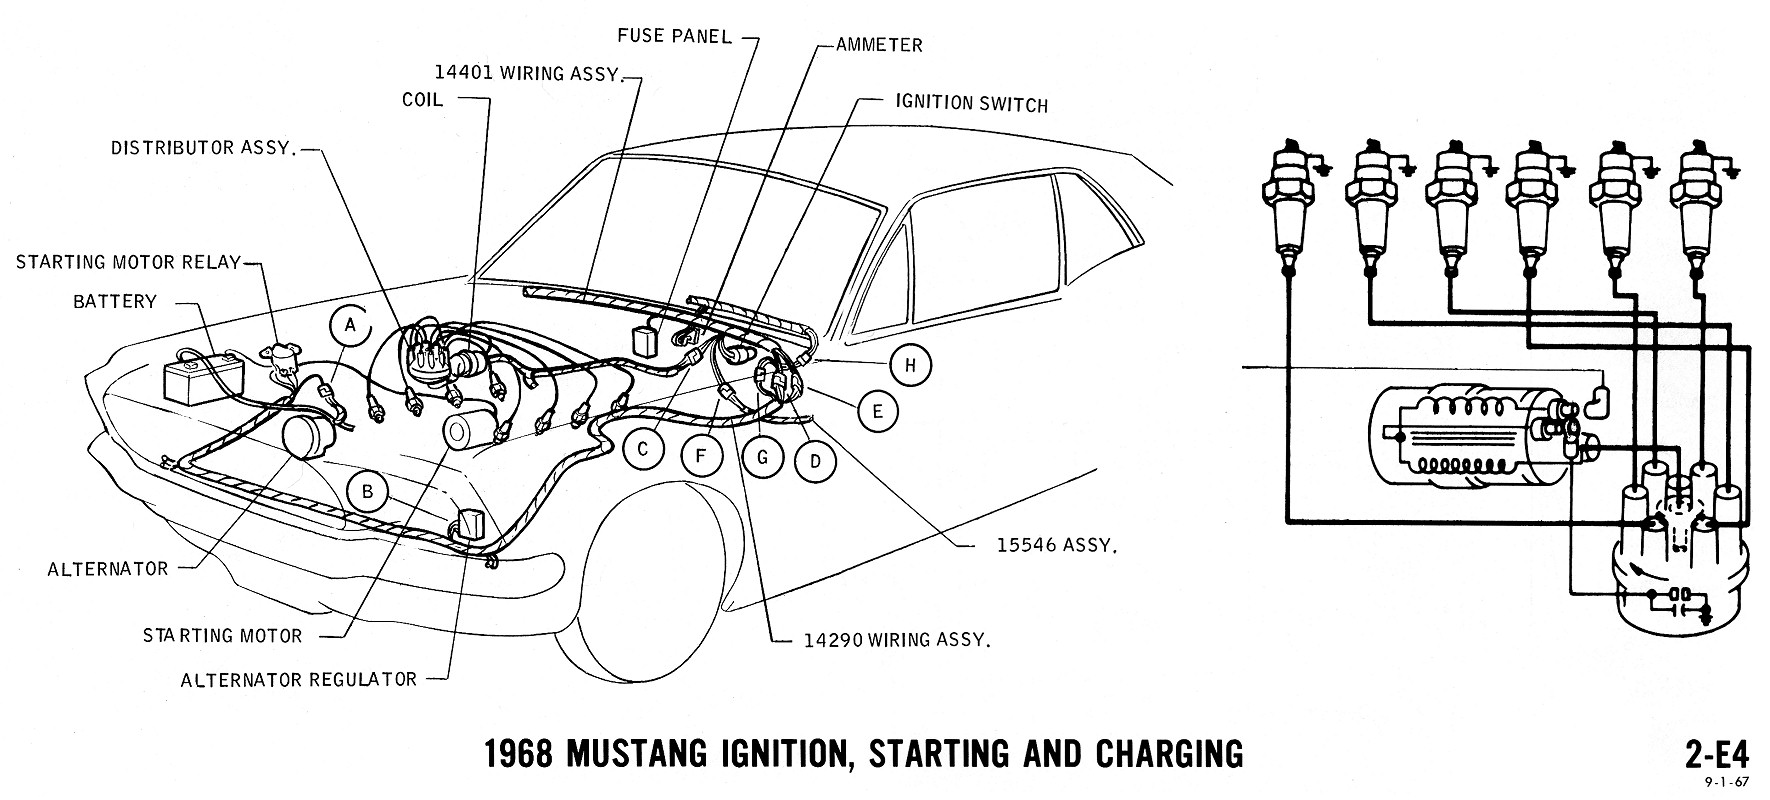 1968 mustang wiring diagram ignition starting charging 2 1968 mustang wiring diagrams and vacuum schematics average joe 1965 ford mustang wiring diagrams at mr168.co